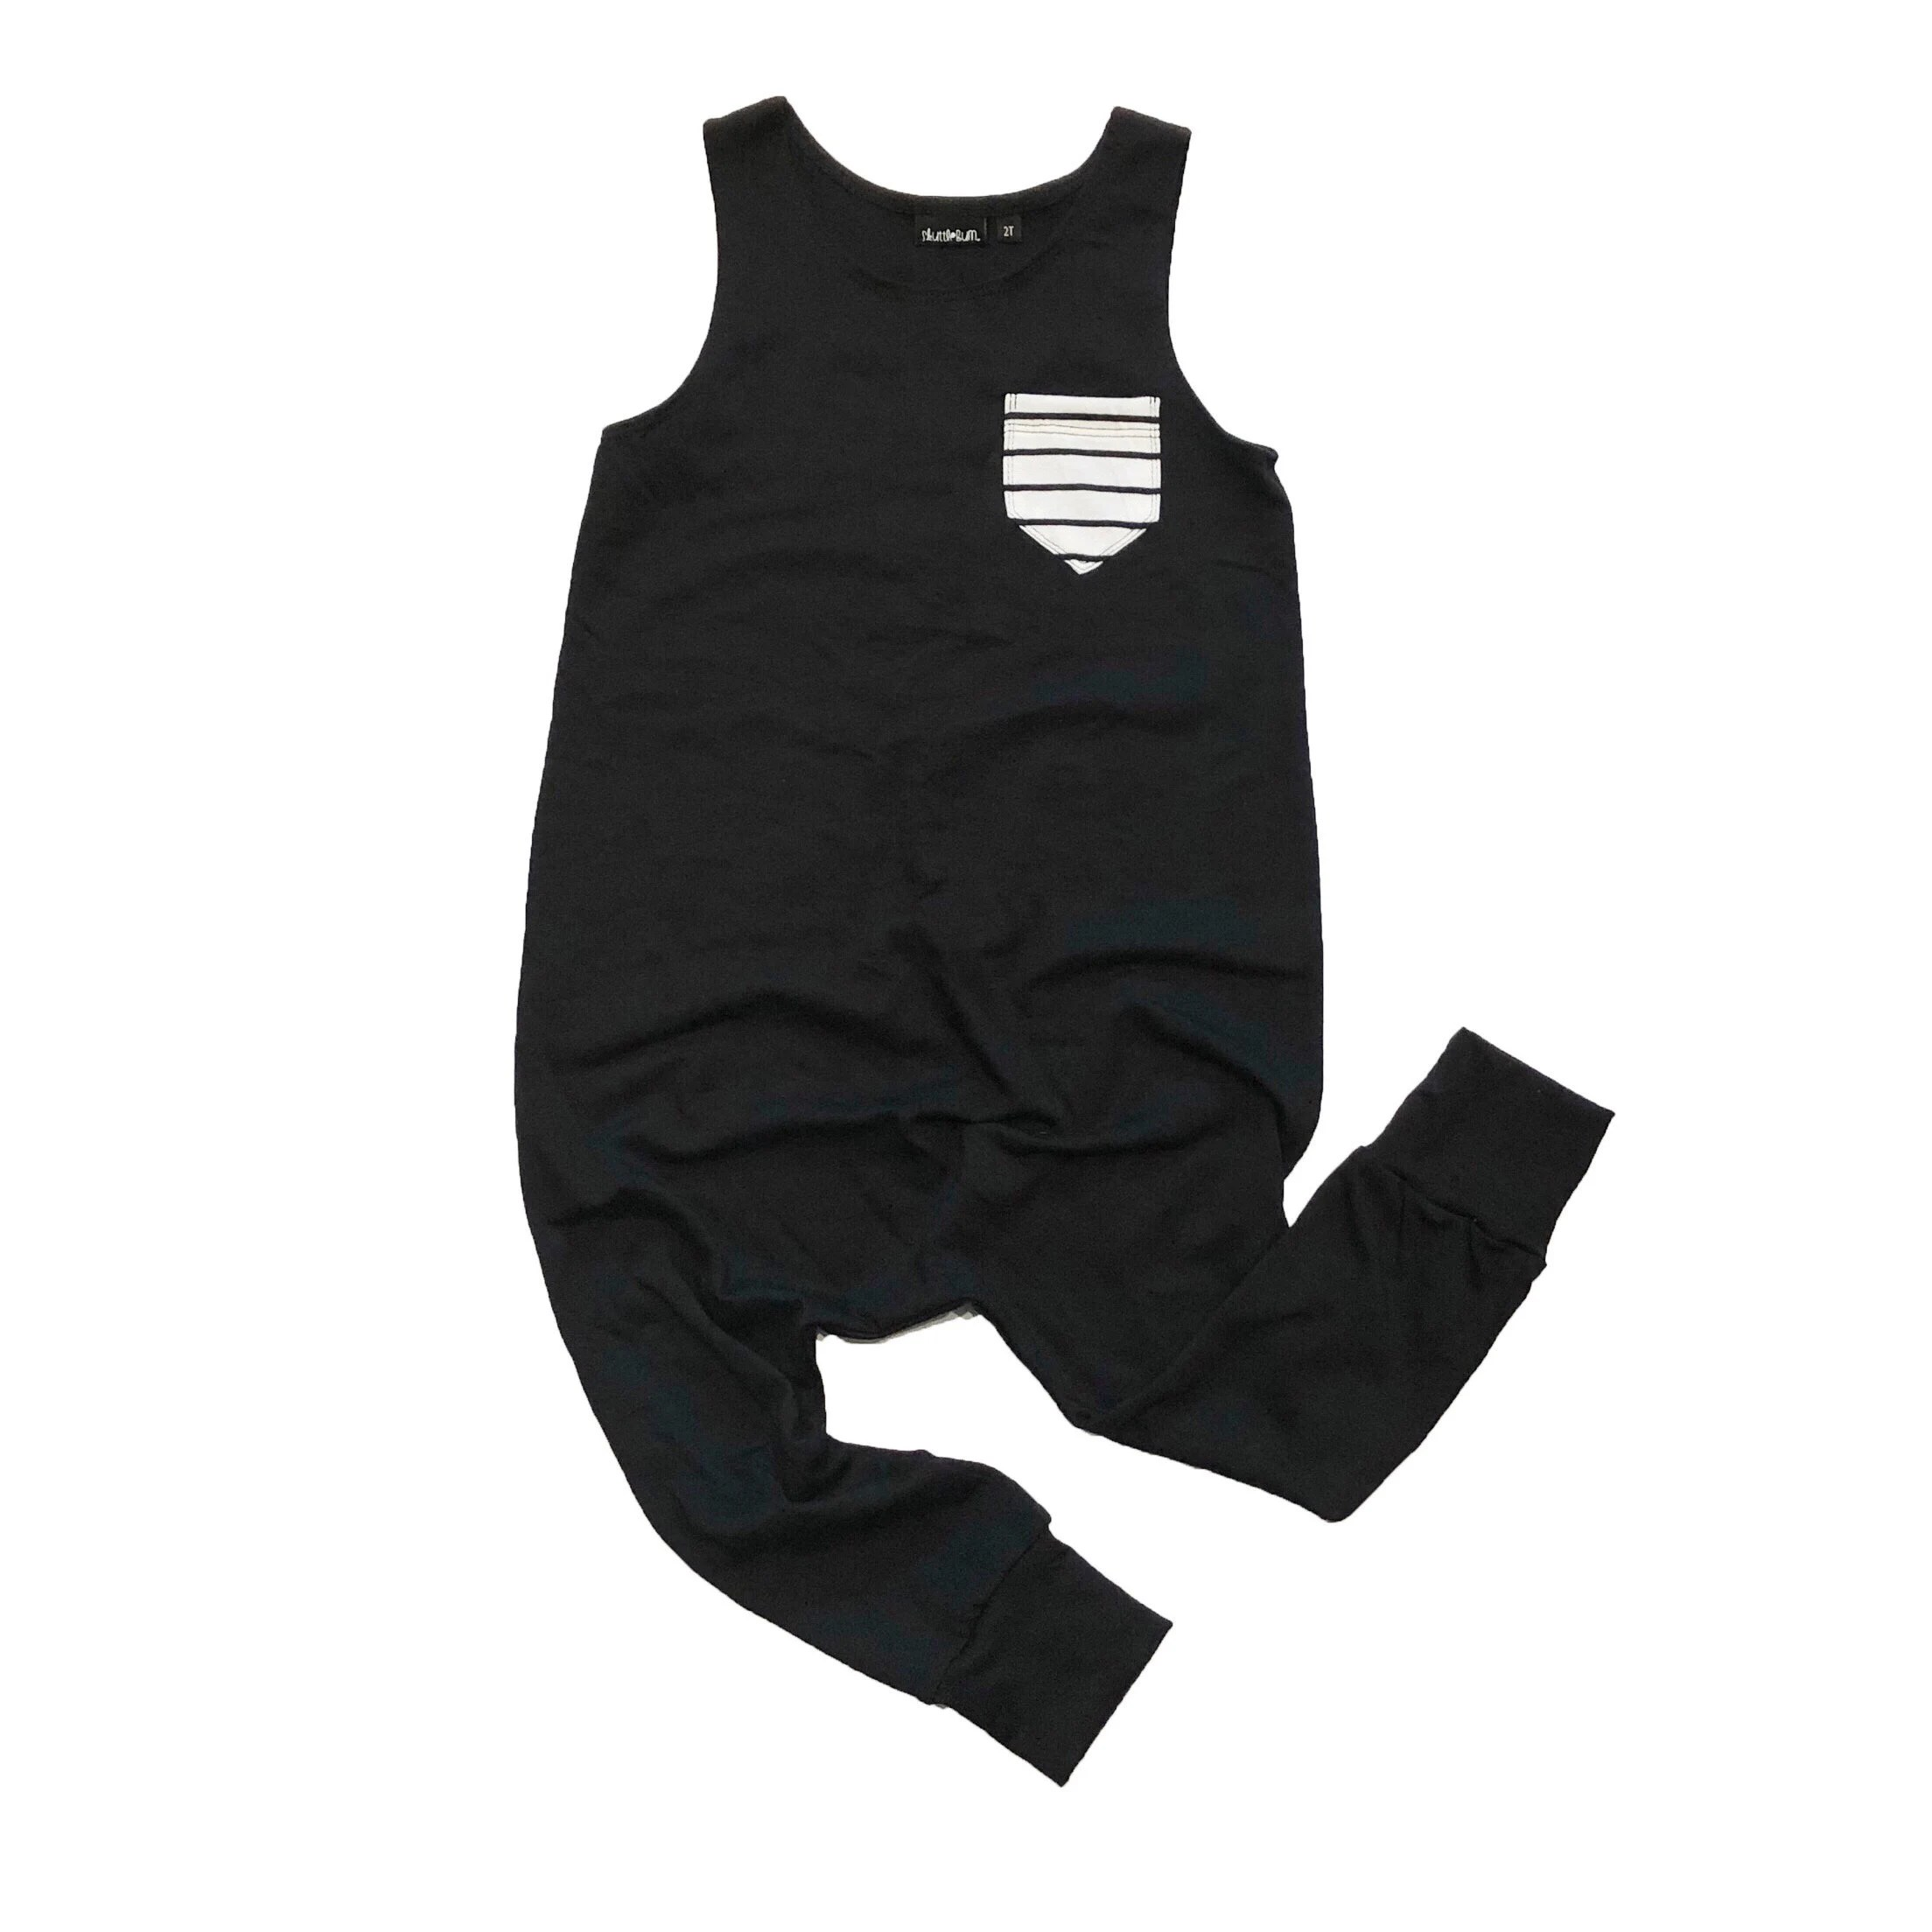 Babyone Baby Jogger Custom Pocket Romper Baby Romper Toddler Romper Baby One Piece Baby Jumper Baby Clothes Toddler Clothes Baby Gift